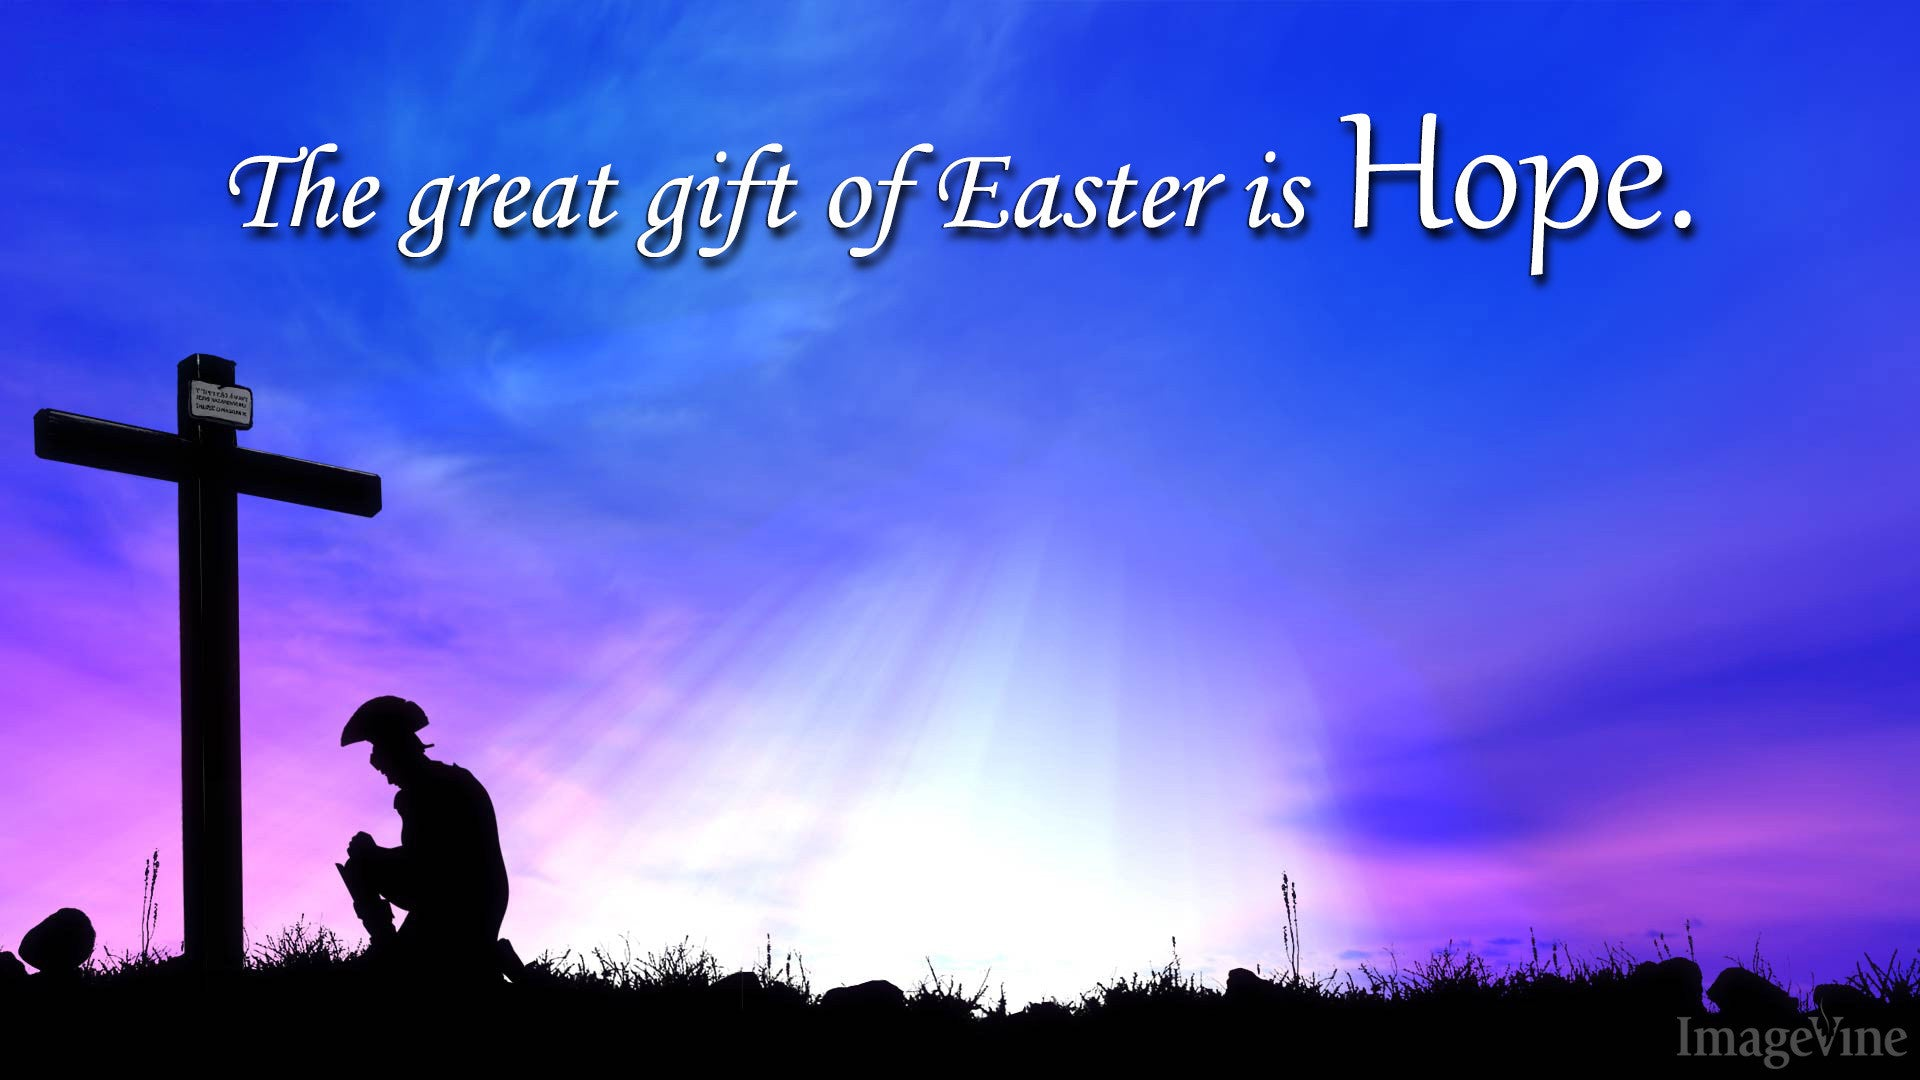 Christian easter backgrounds imagevine easter sunday soldier kneeling cross background christian free quote negle Image collections